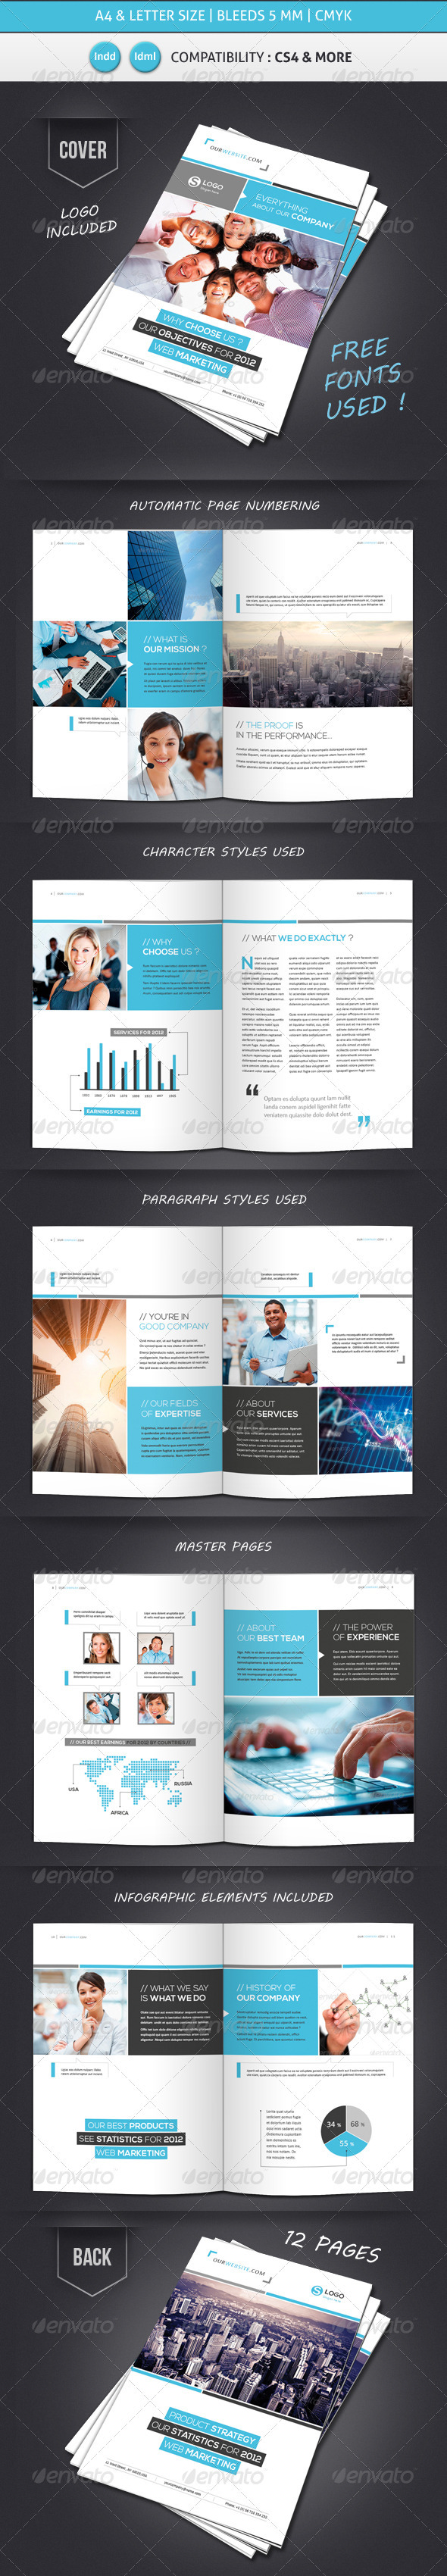 GraphicRiver Business Brochure Template A4 & Letter 12 Pages 3841482